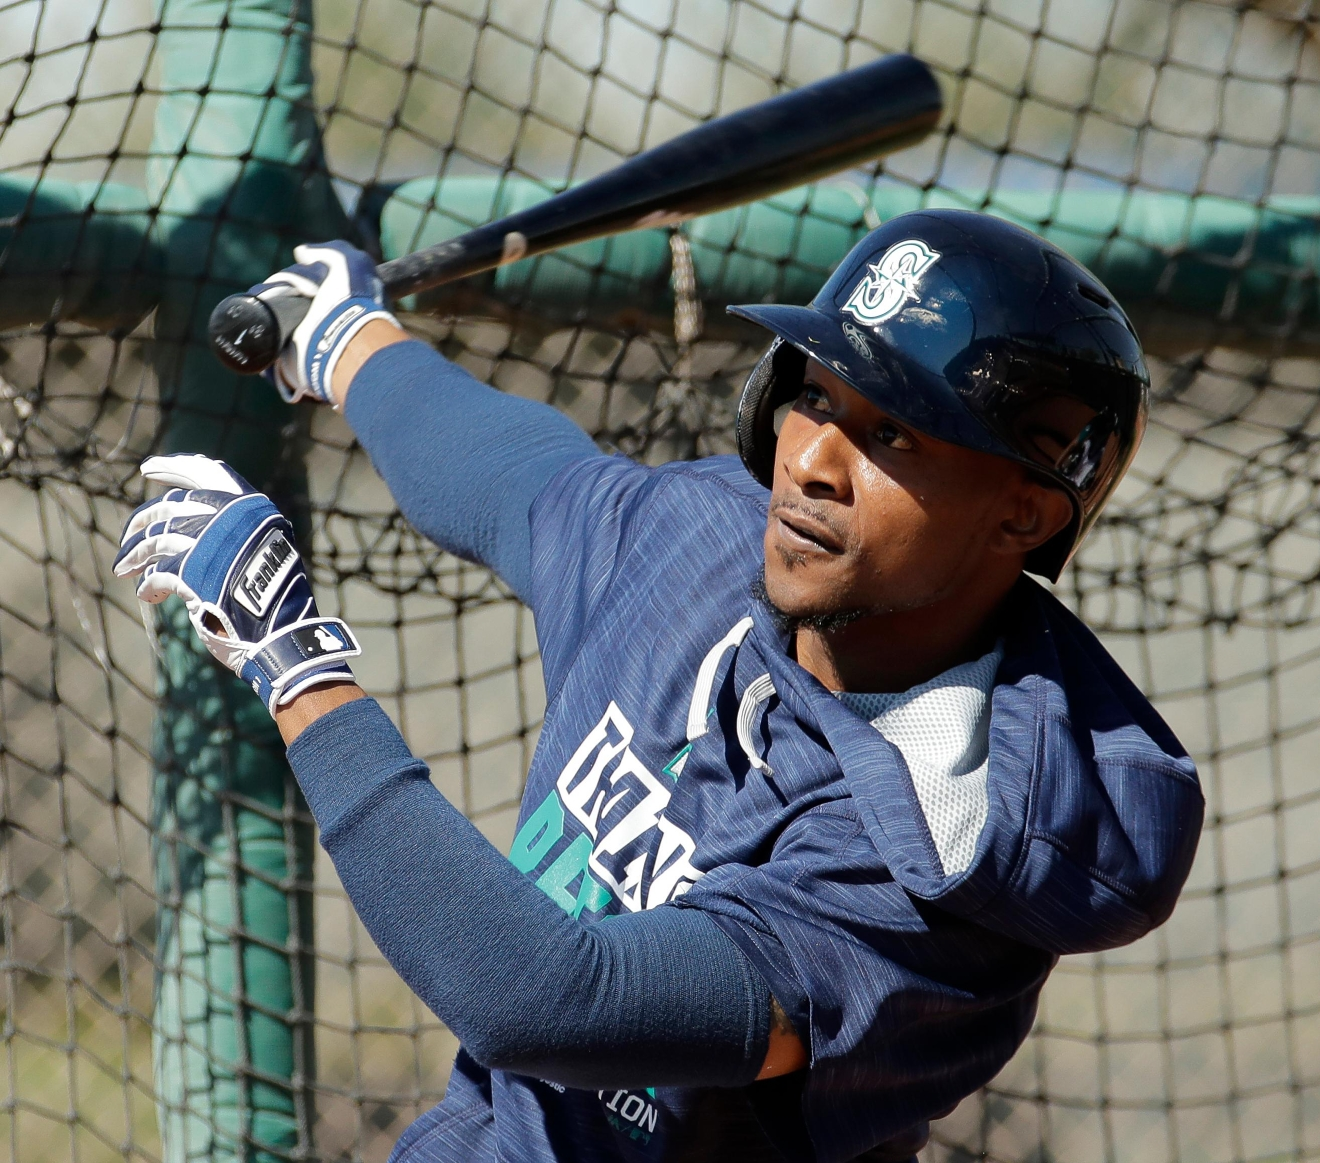 Seattle Mariners' Jarrod Dyson bats during baseball spring training Tuesday, Feb. 21, 2017, in Peoria, Ariz. (AP Photo/Charlie Riedel)